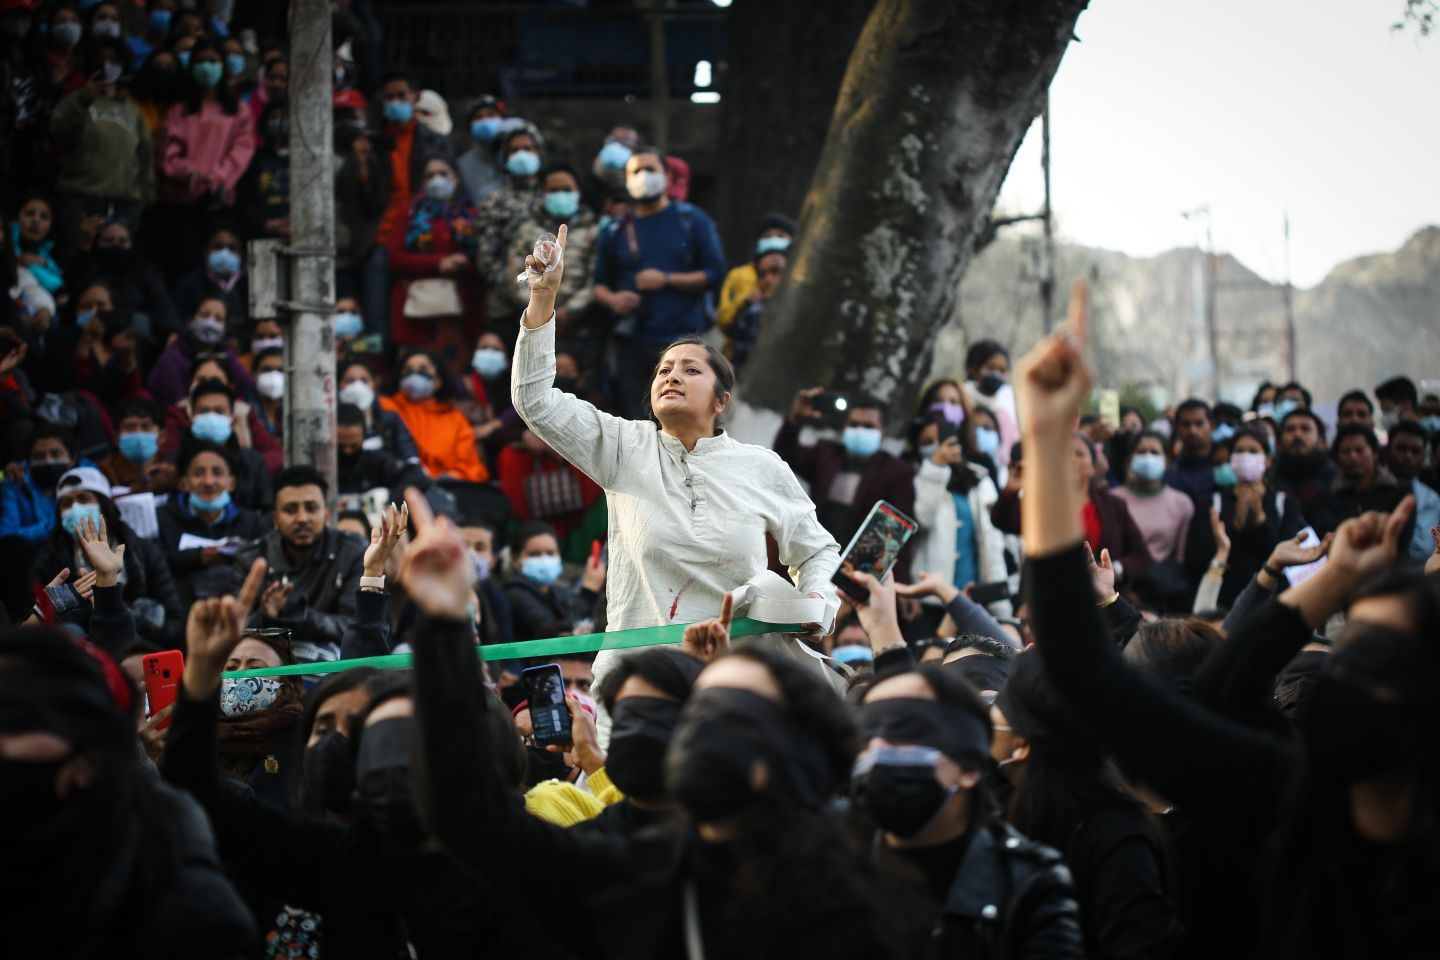 More anti-government rallies in Nepal